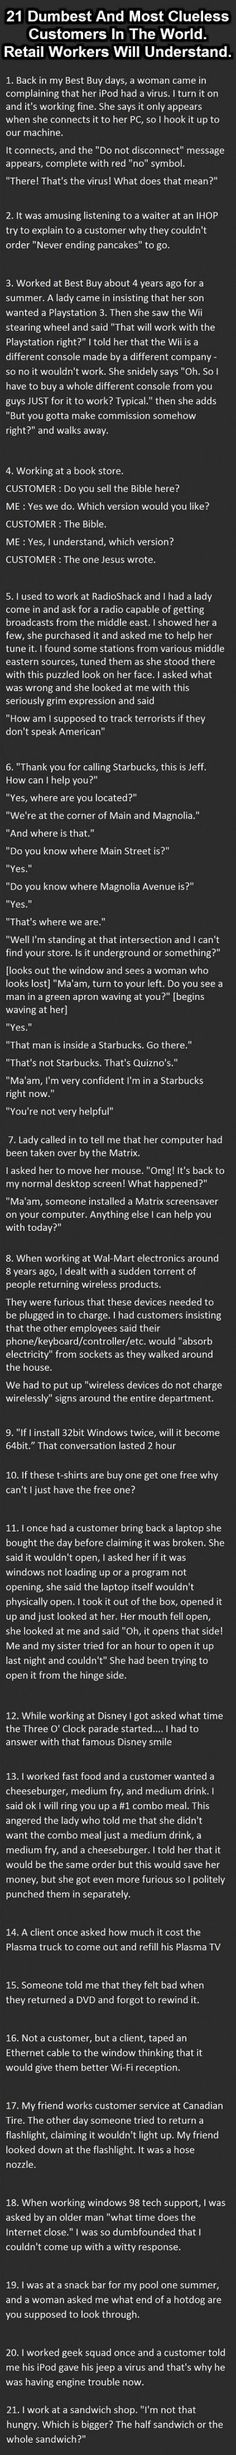 21 dumbest customers in the world - Sounds like my retail job days...